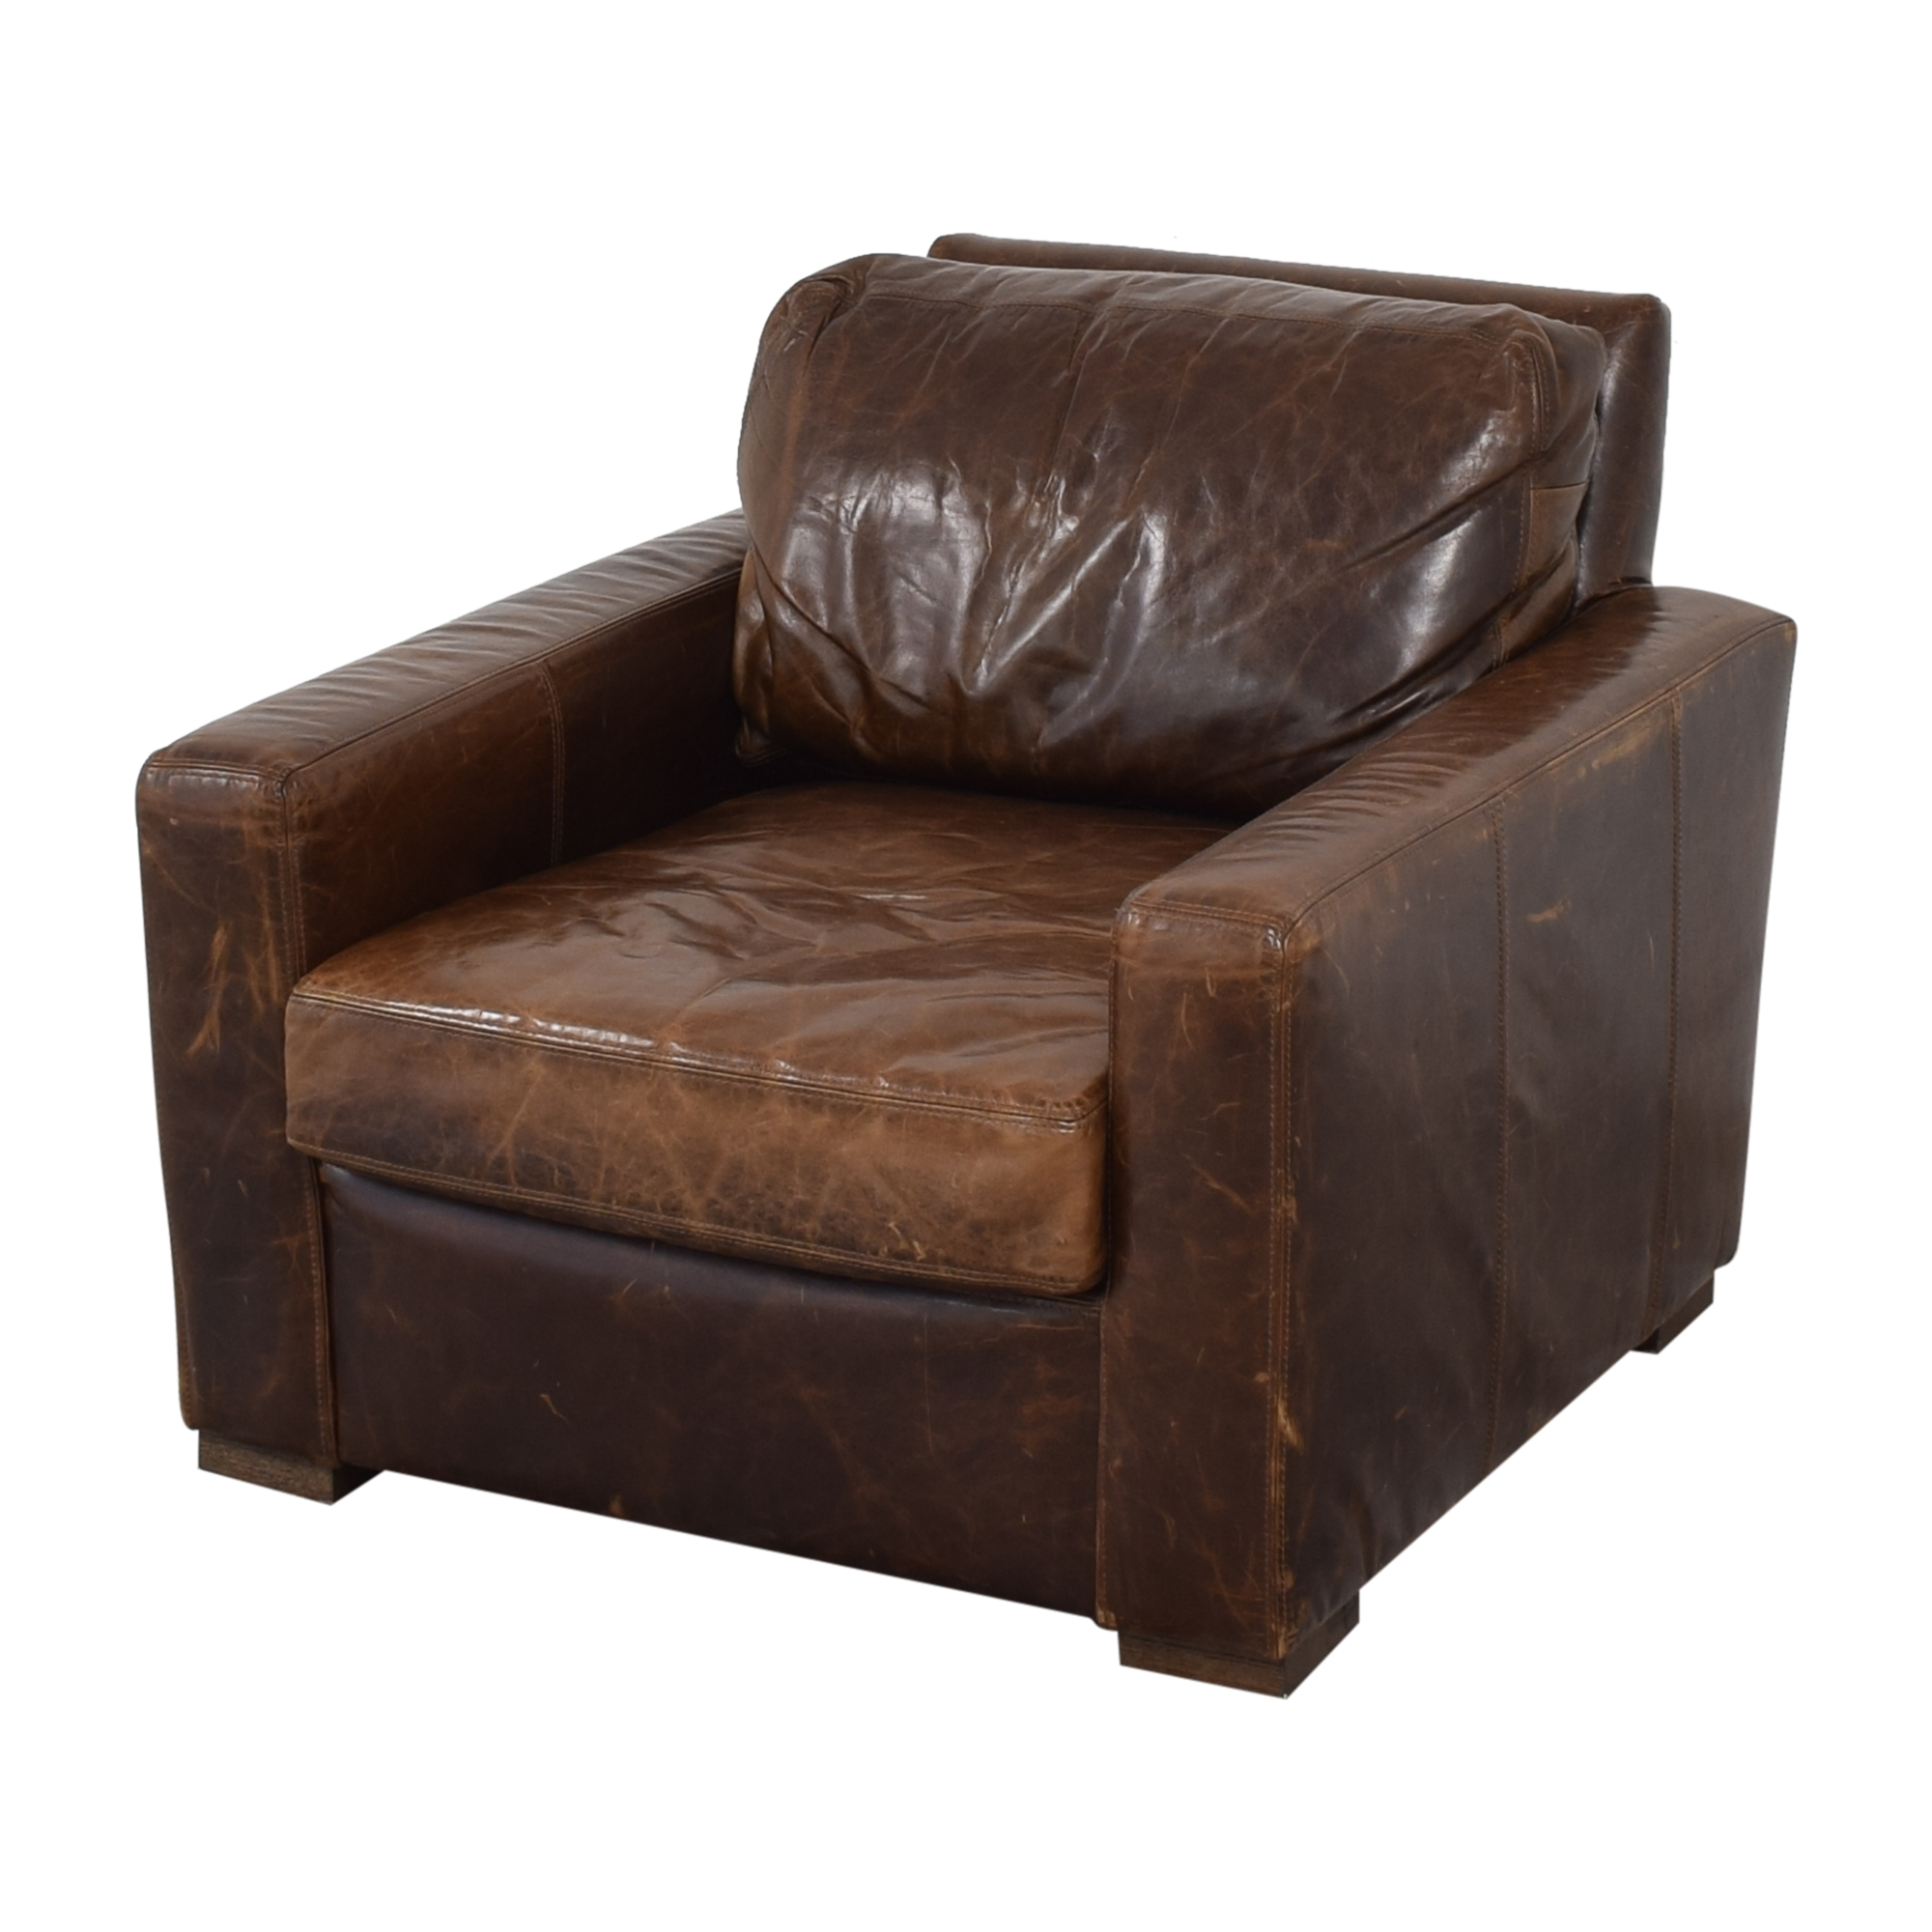 buy Restoration Hardware Restoration Hardware Petite Maxwell Chair and Ottoman online